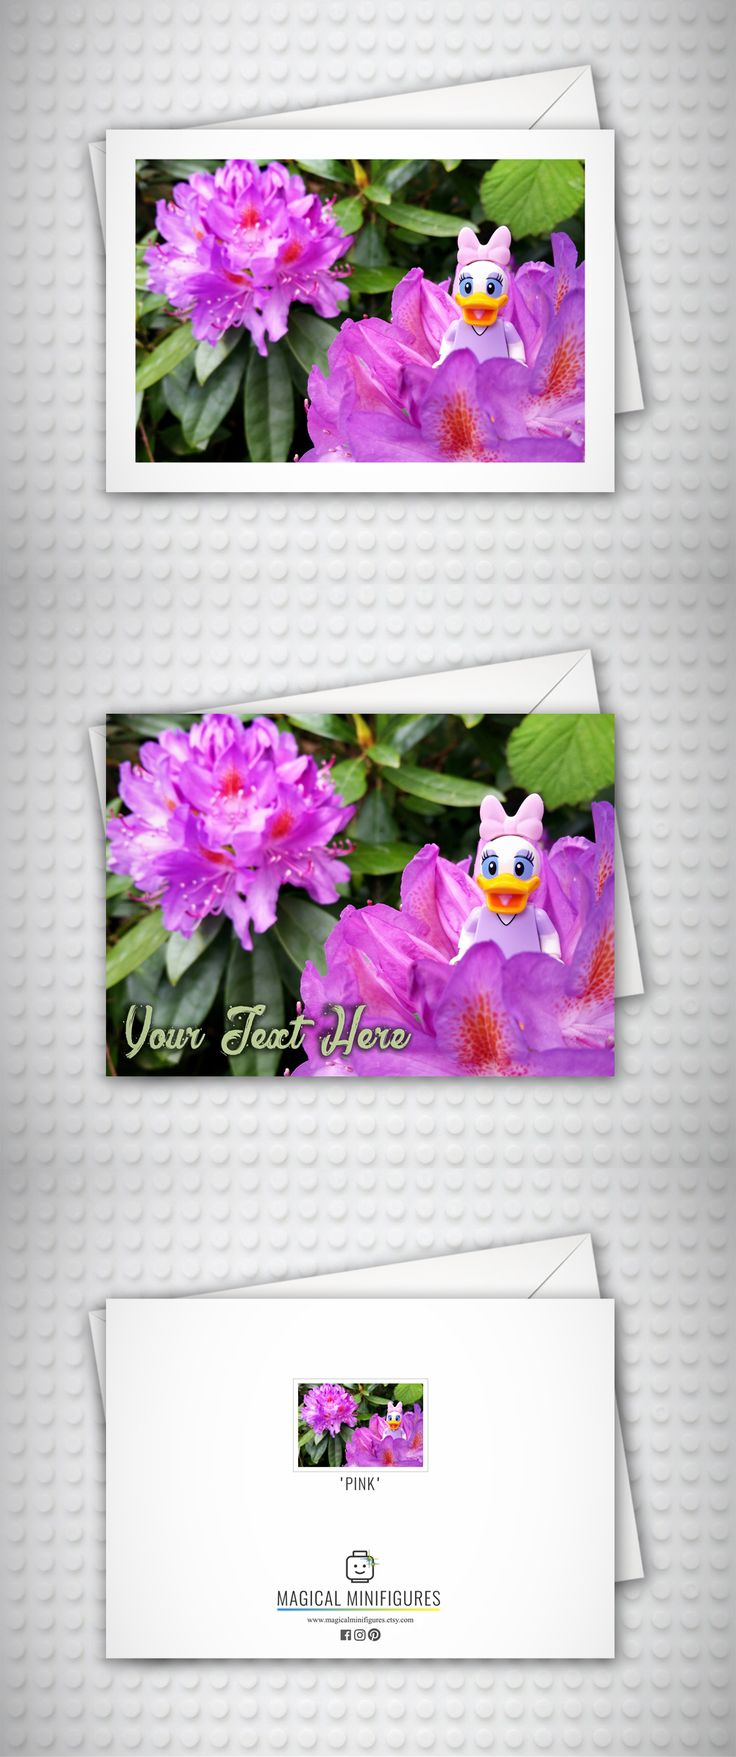 Daisy Duck - Disney - Lego Minifigure - Flowers - Pink - Birthday Card - Personalised Card - Thank You Card